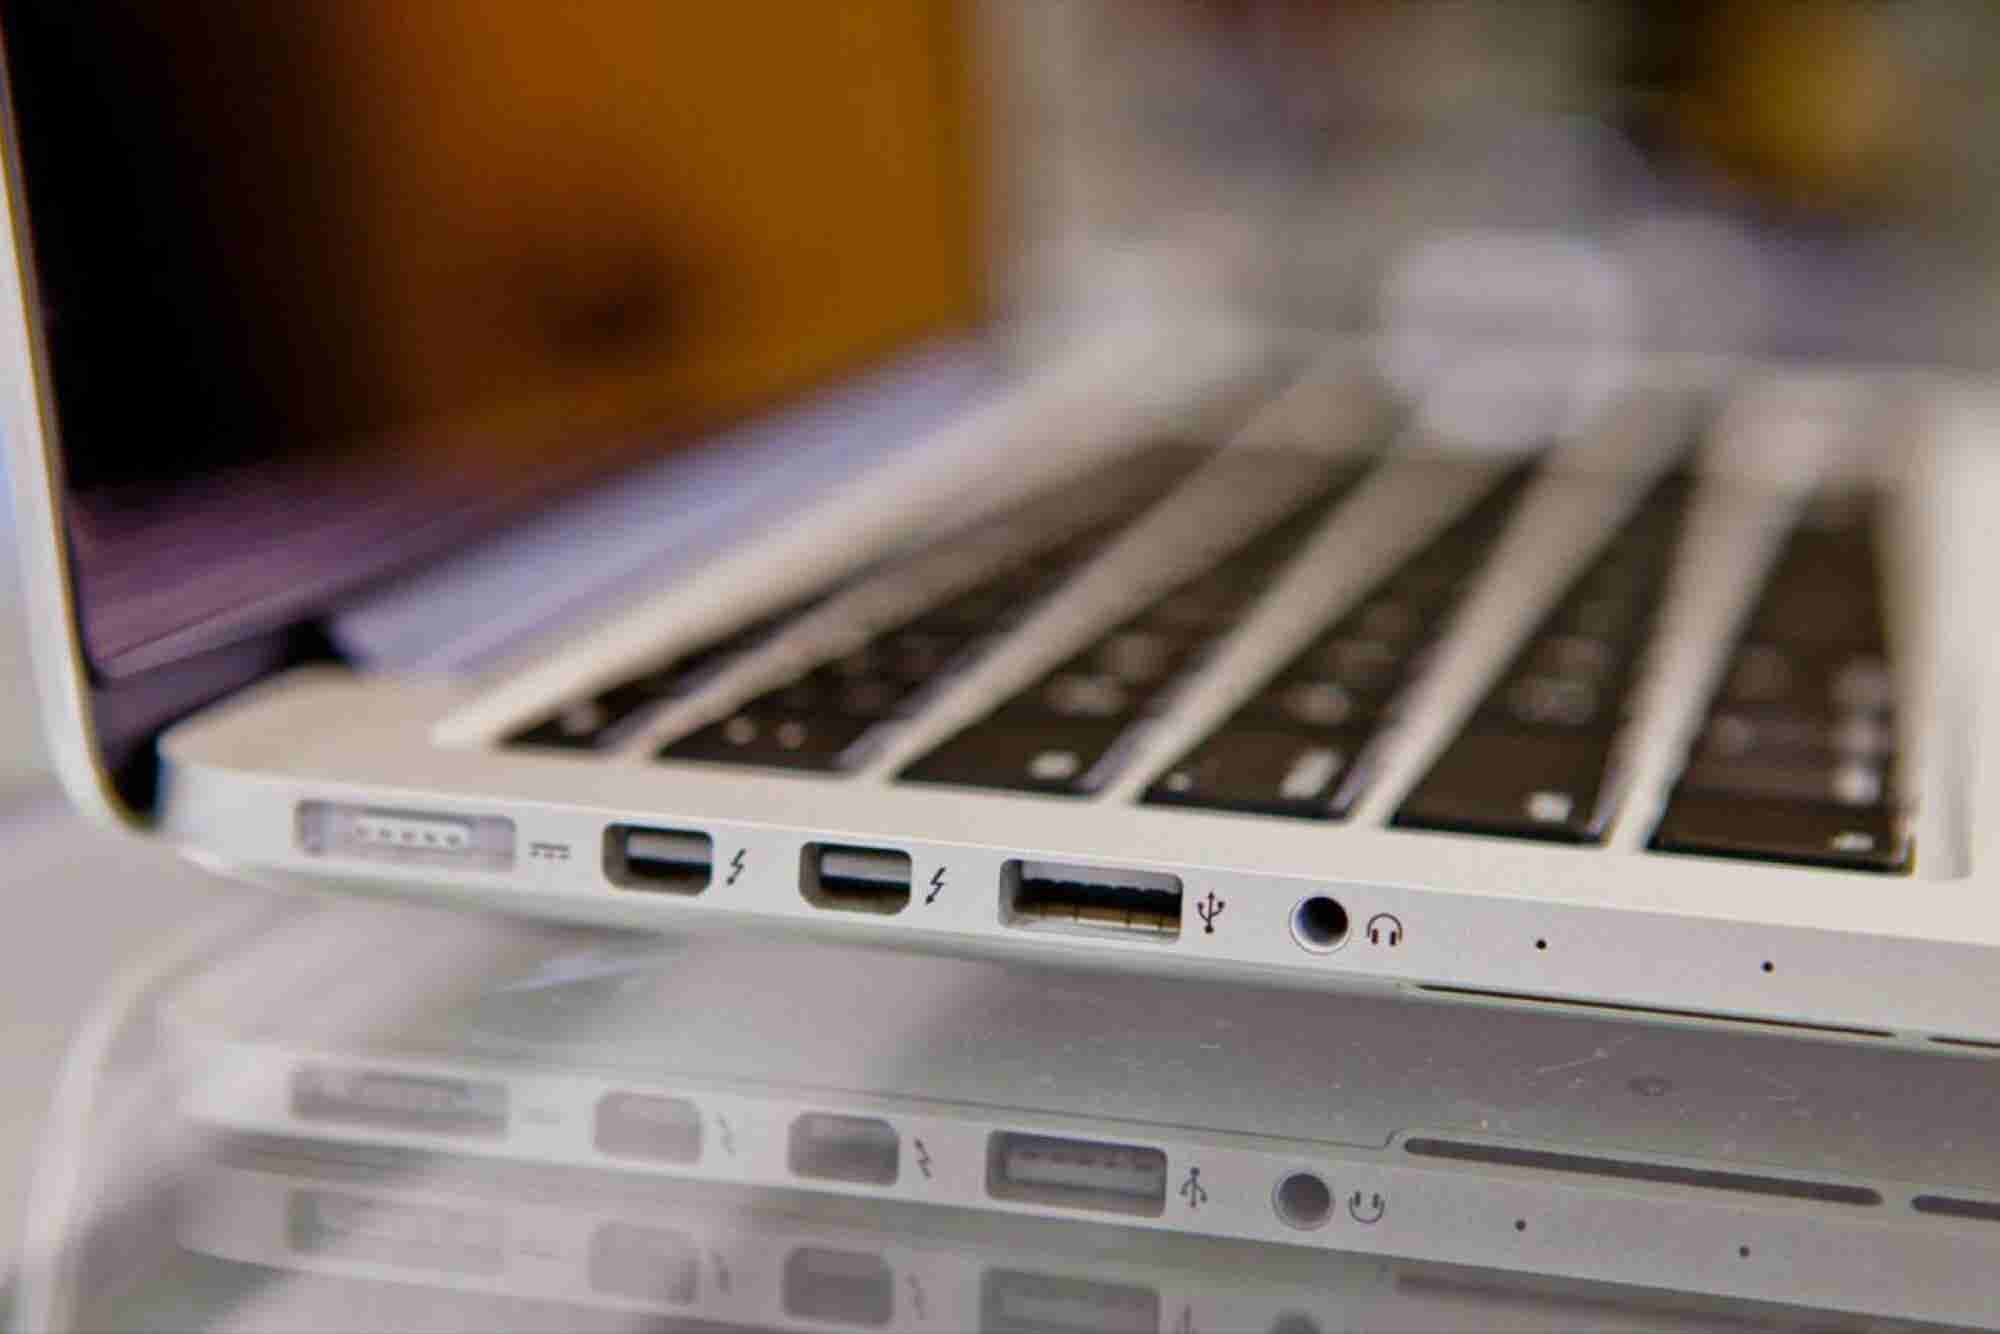 10 Secret Features Hidden in Your Mac